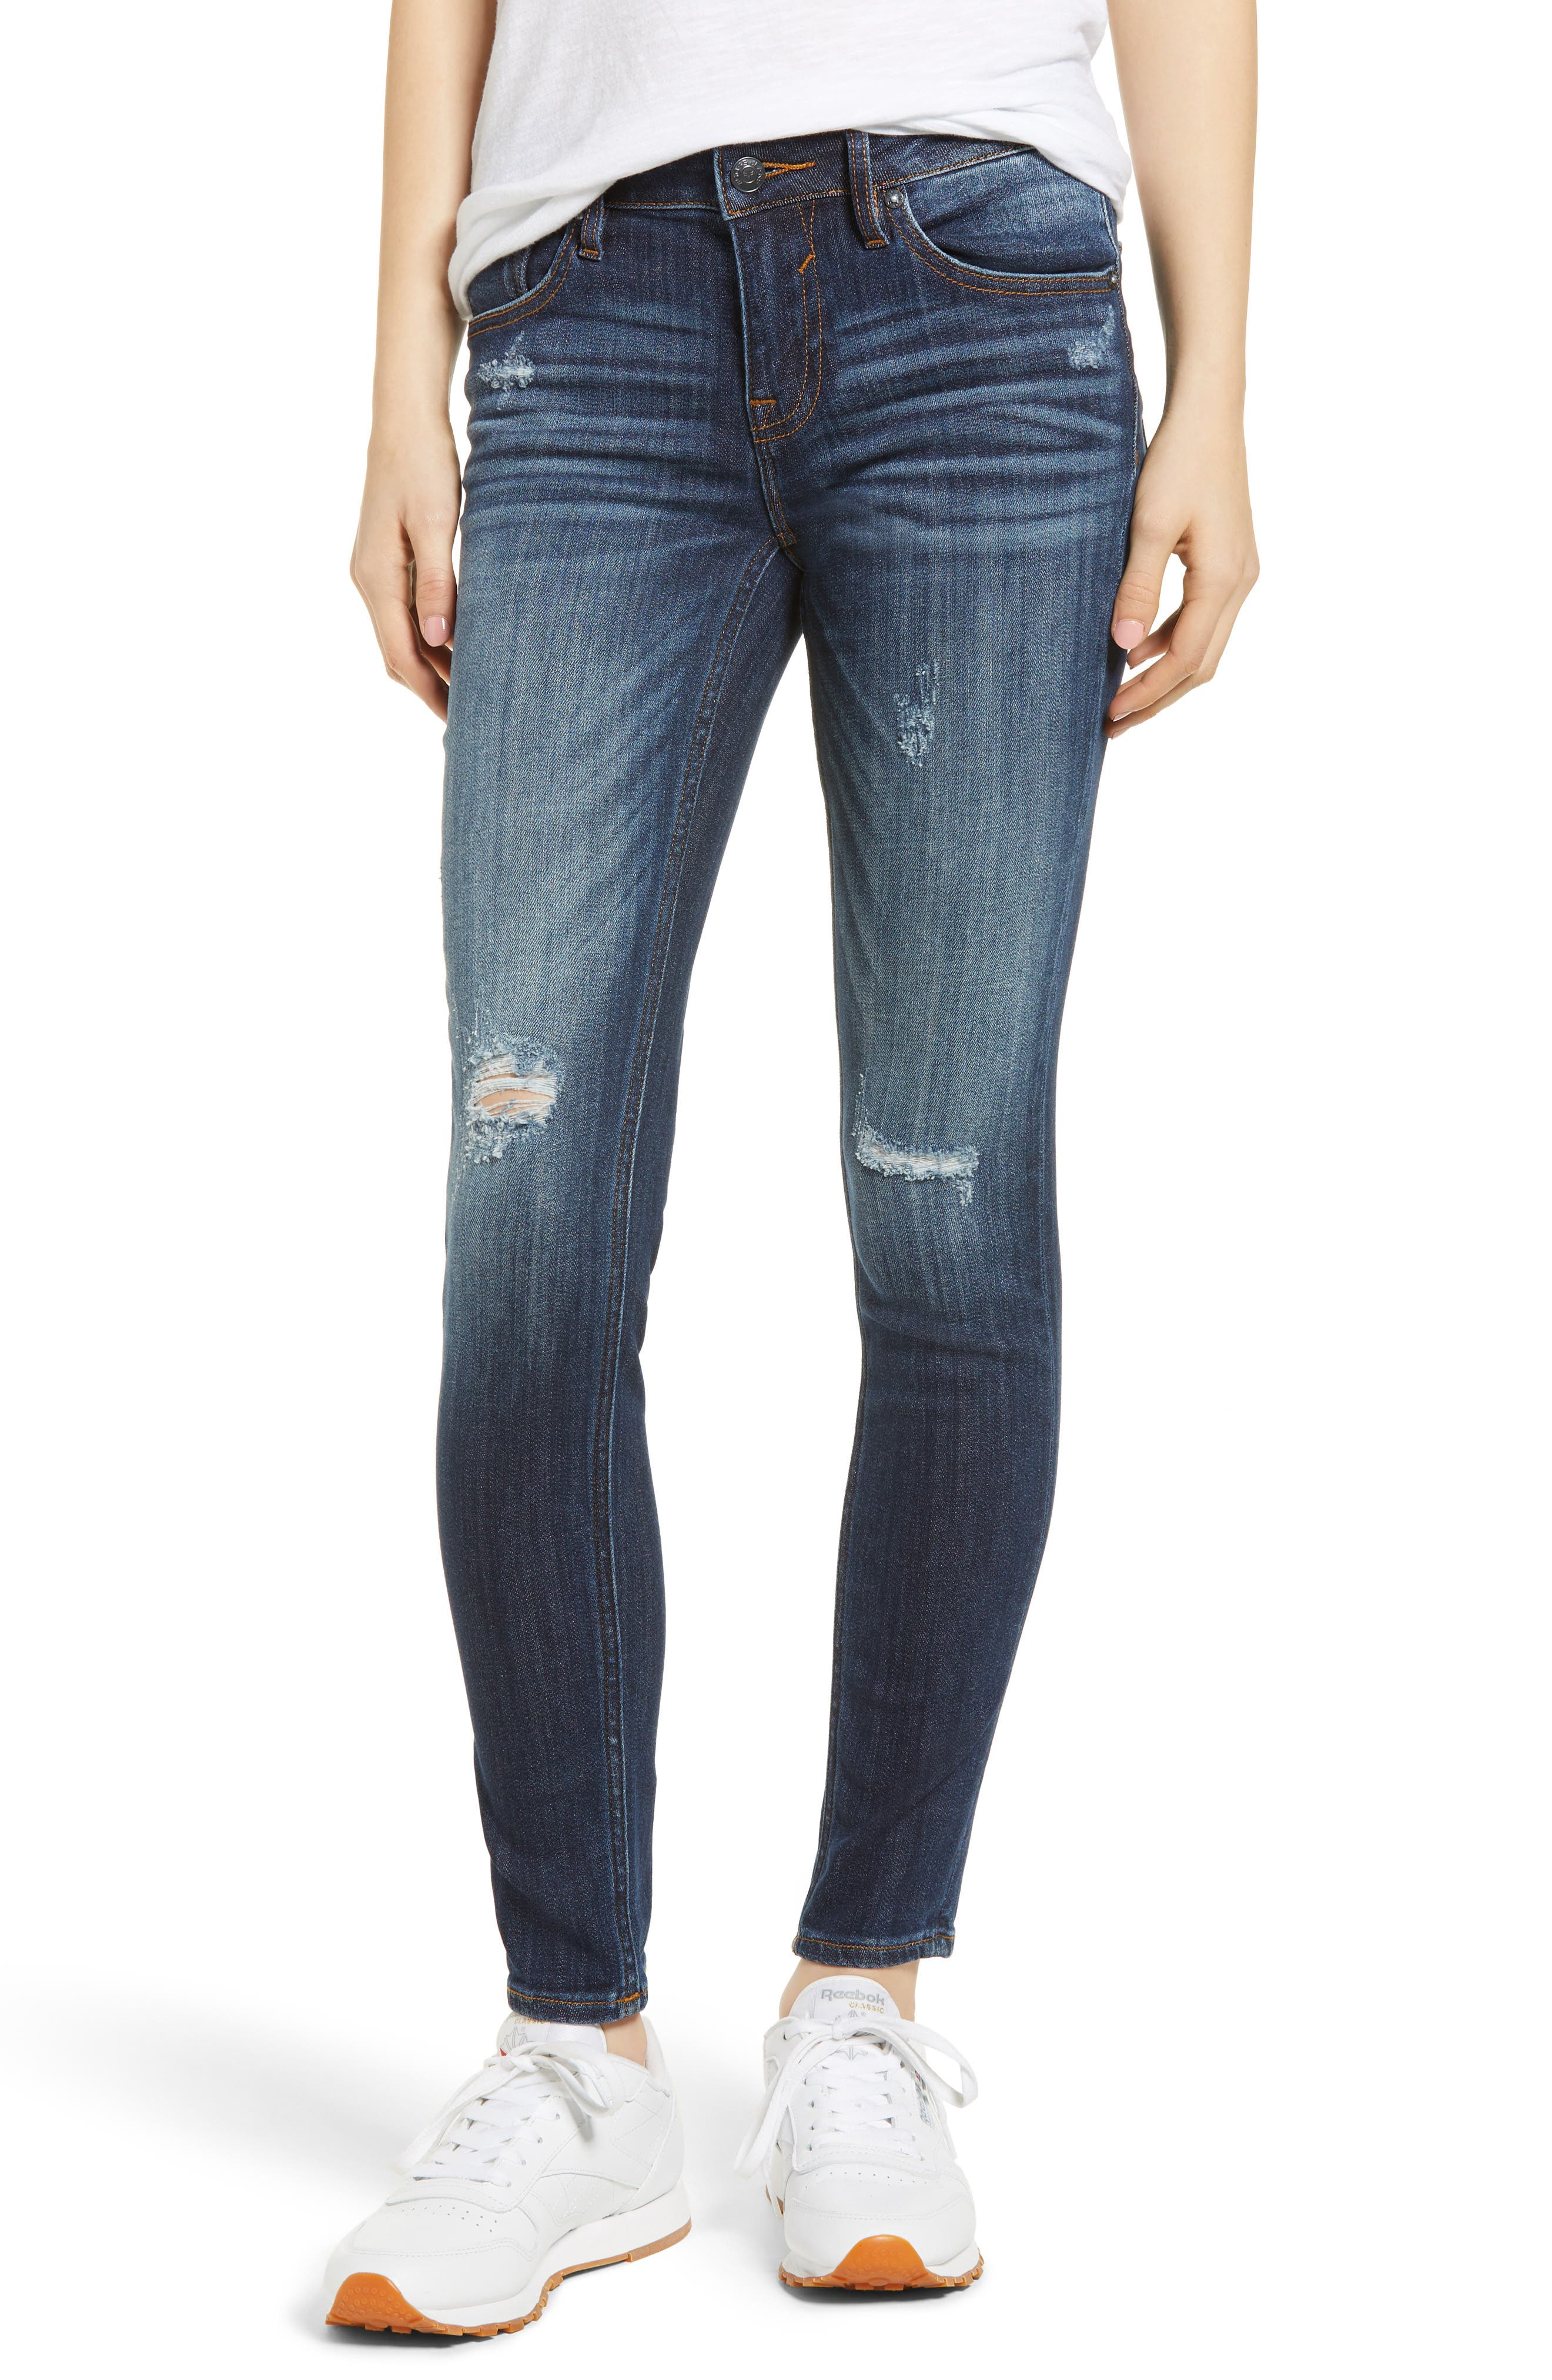 Jagger Ripped Skinny Jeans,                             Main thumbnail 1, color,                             403